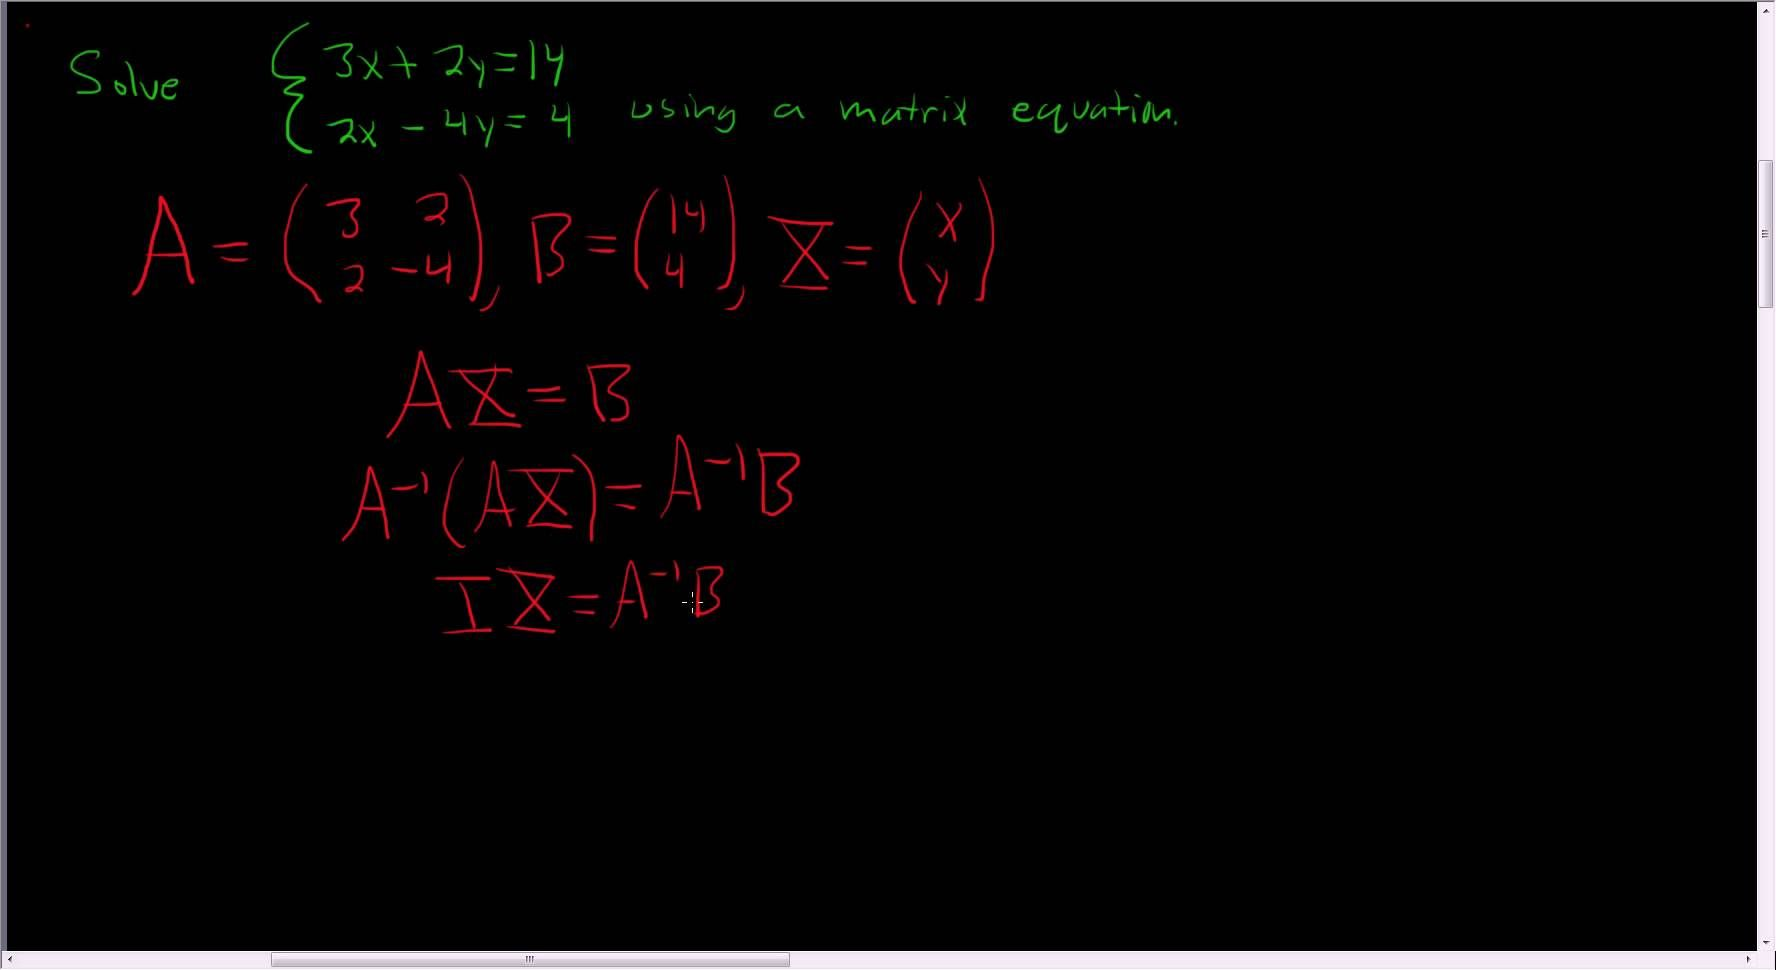 Solving A System Of Equations With A Matrix Equation